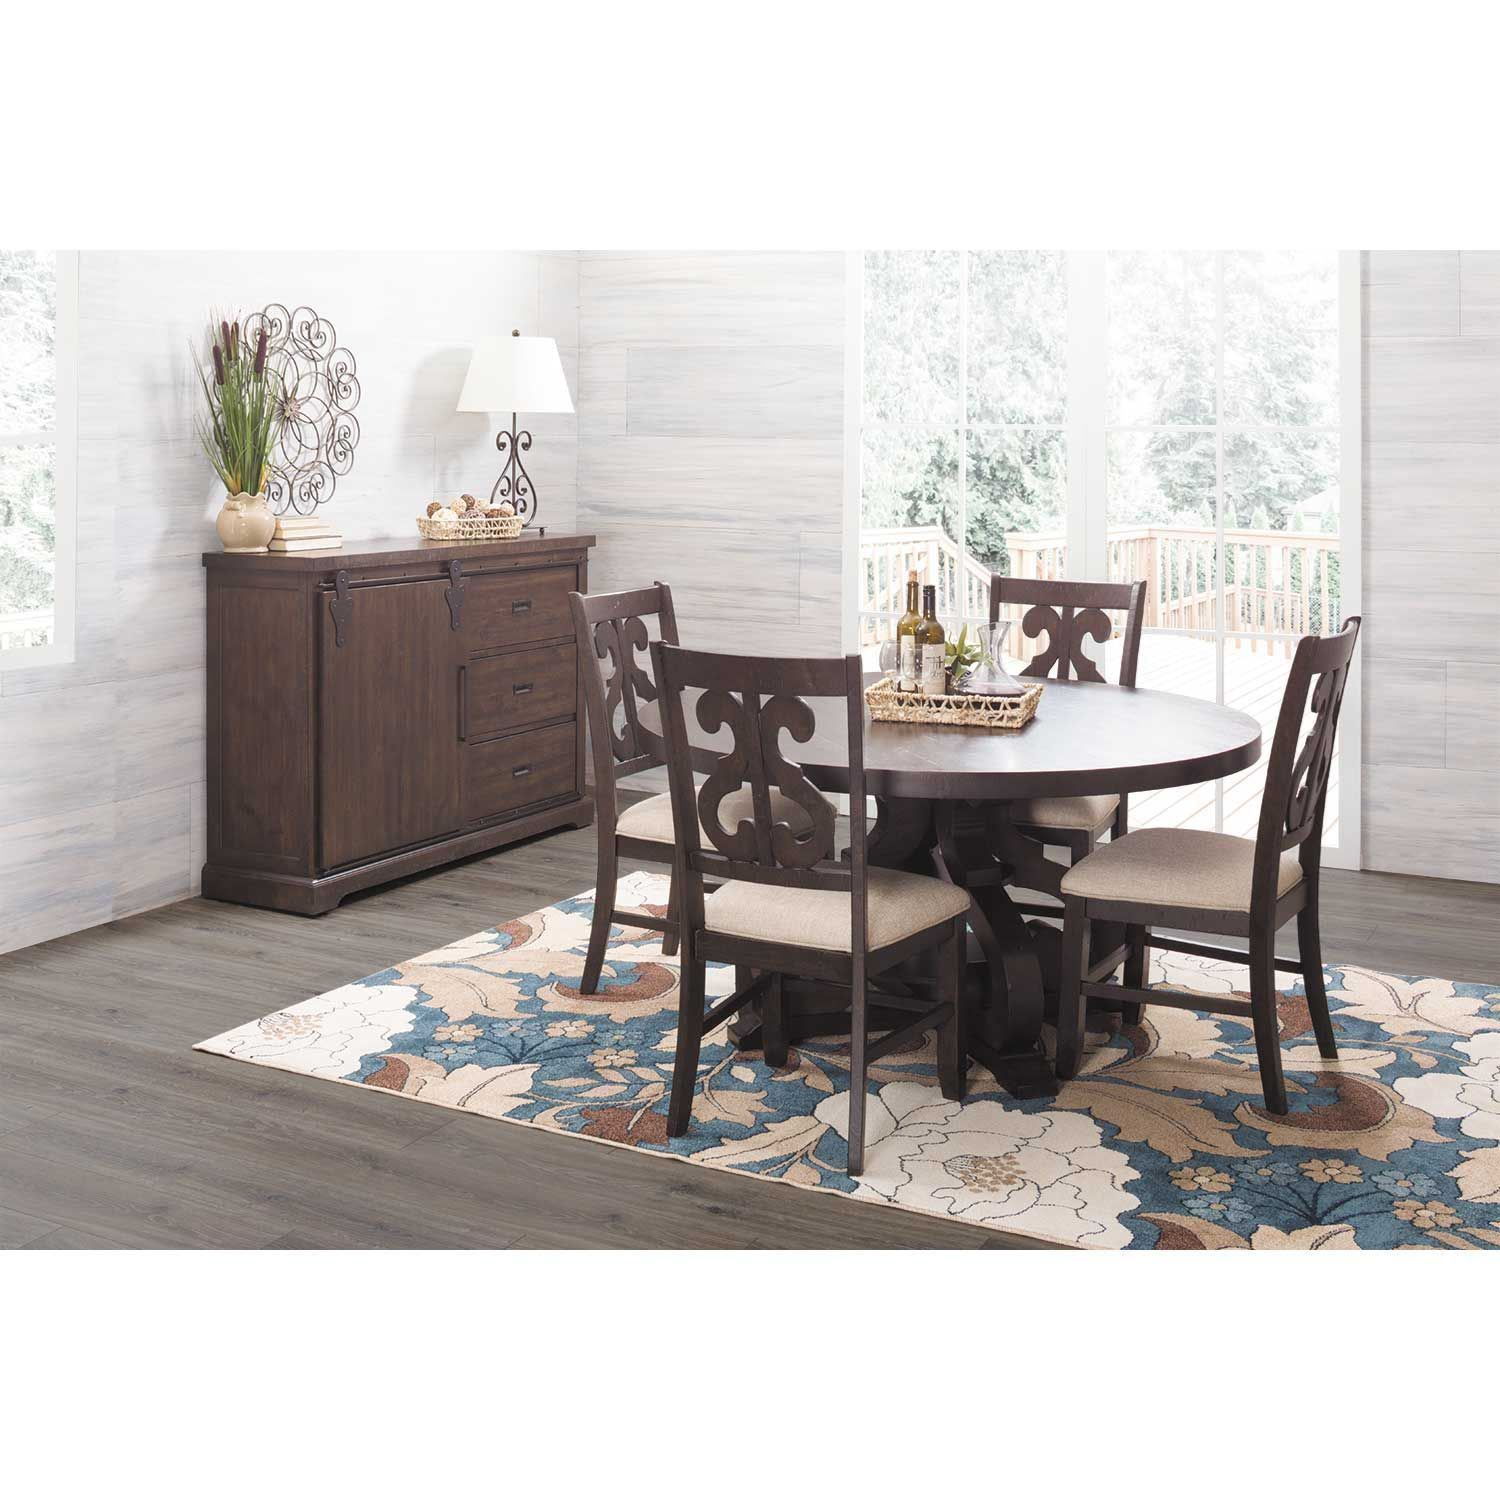 Picture of Sedona 5 Piece Dining Set